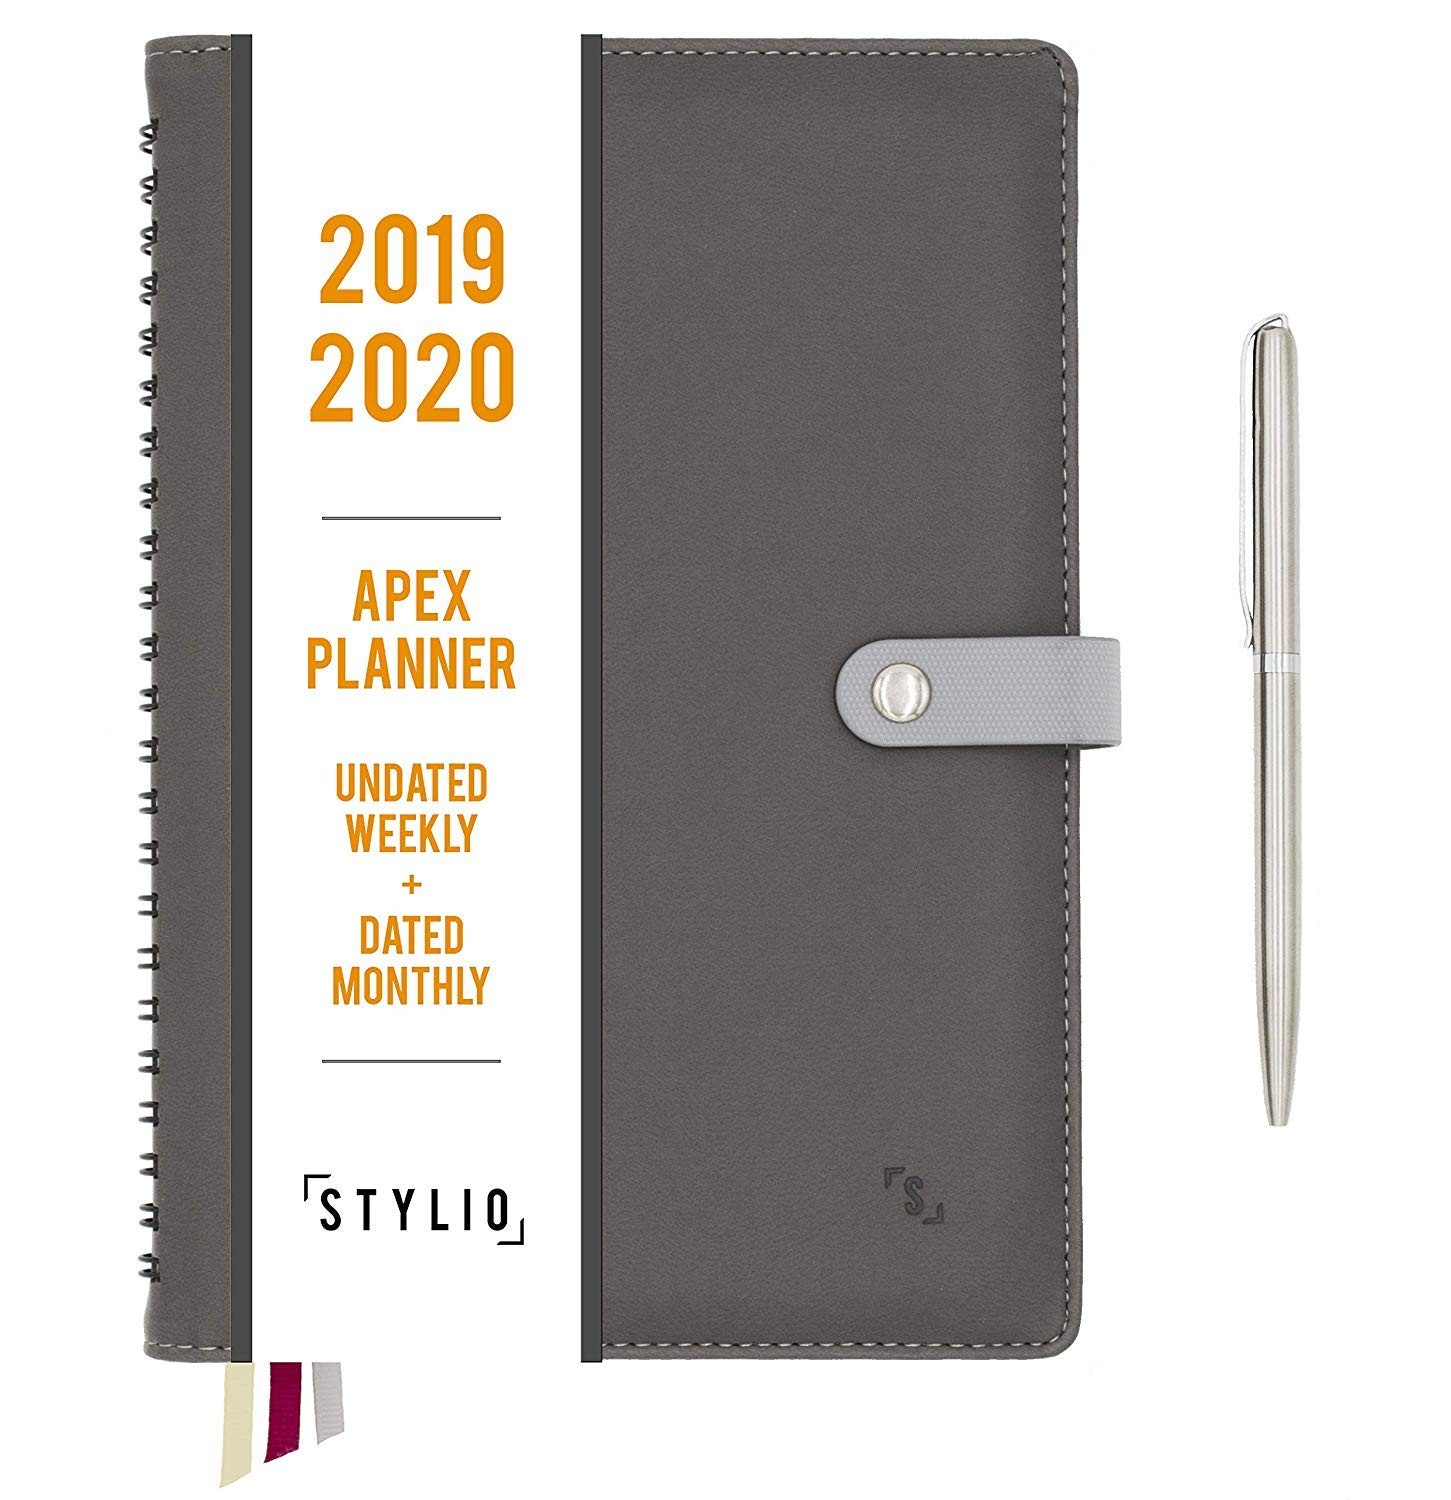 STYLIO Apex Planner 2019-2020. Undated Weekly, Dated Monthly Calendar Personal Agenda Organizer for Business/Academic/School Life. Daily Goals, ...